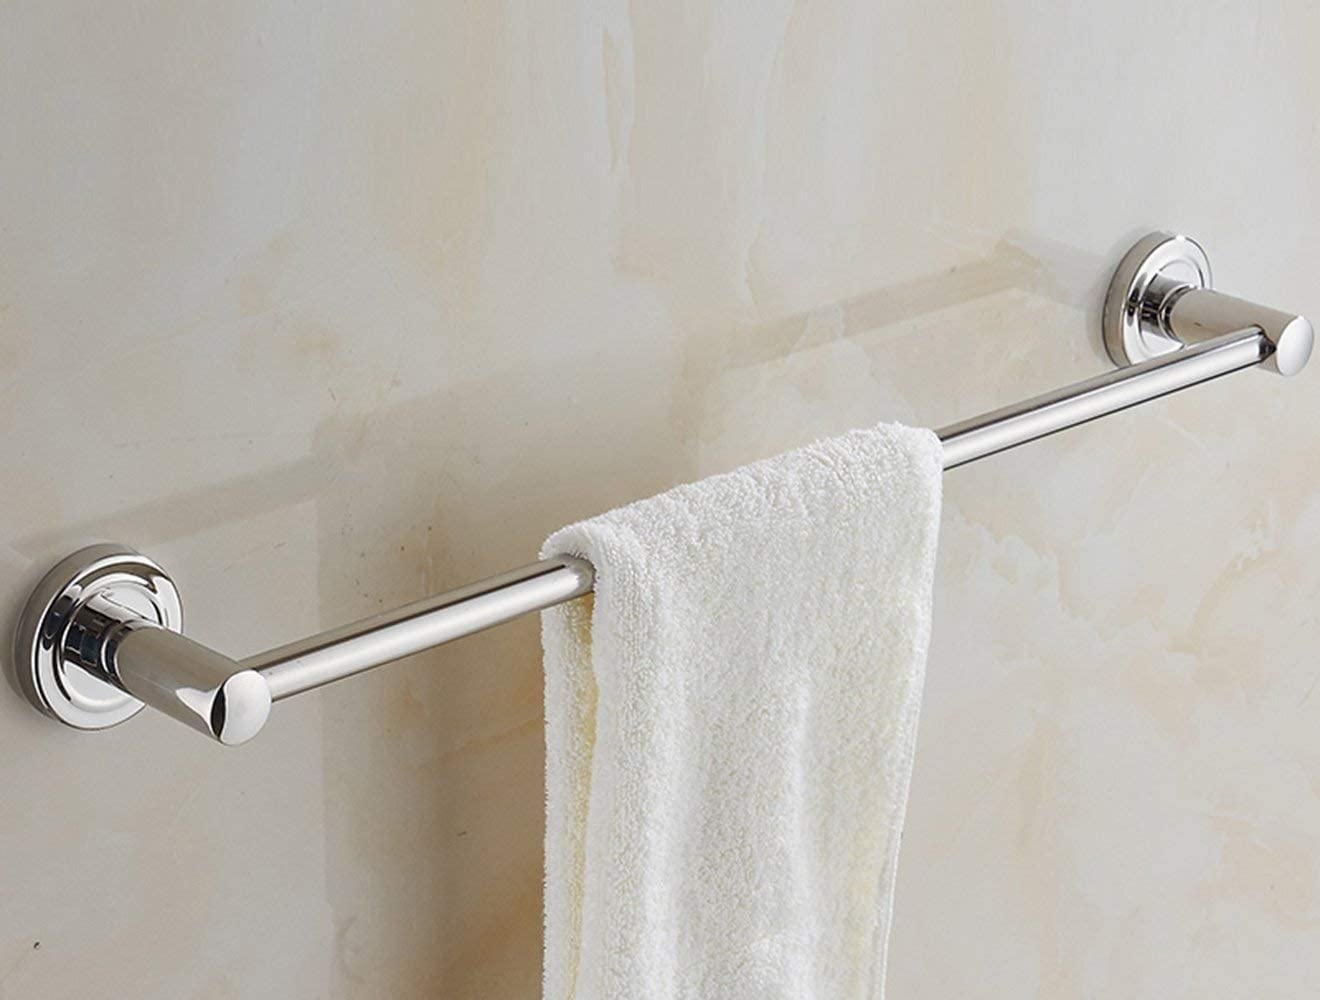 ADSE Stainless Steel Towel Bar Extended Pole Single T Rod Max Max 48% OFF 75% OFF Toilet